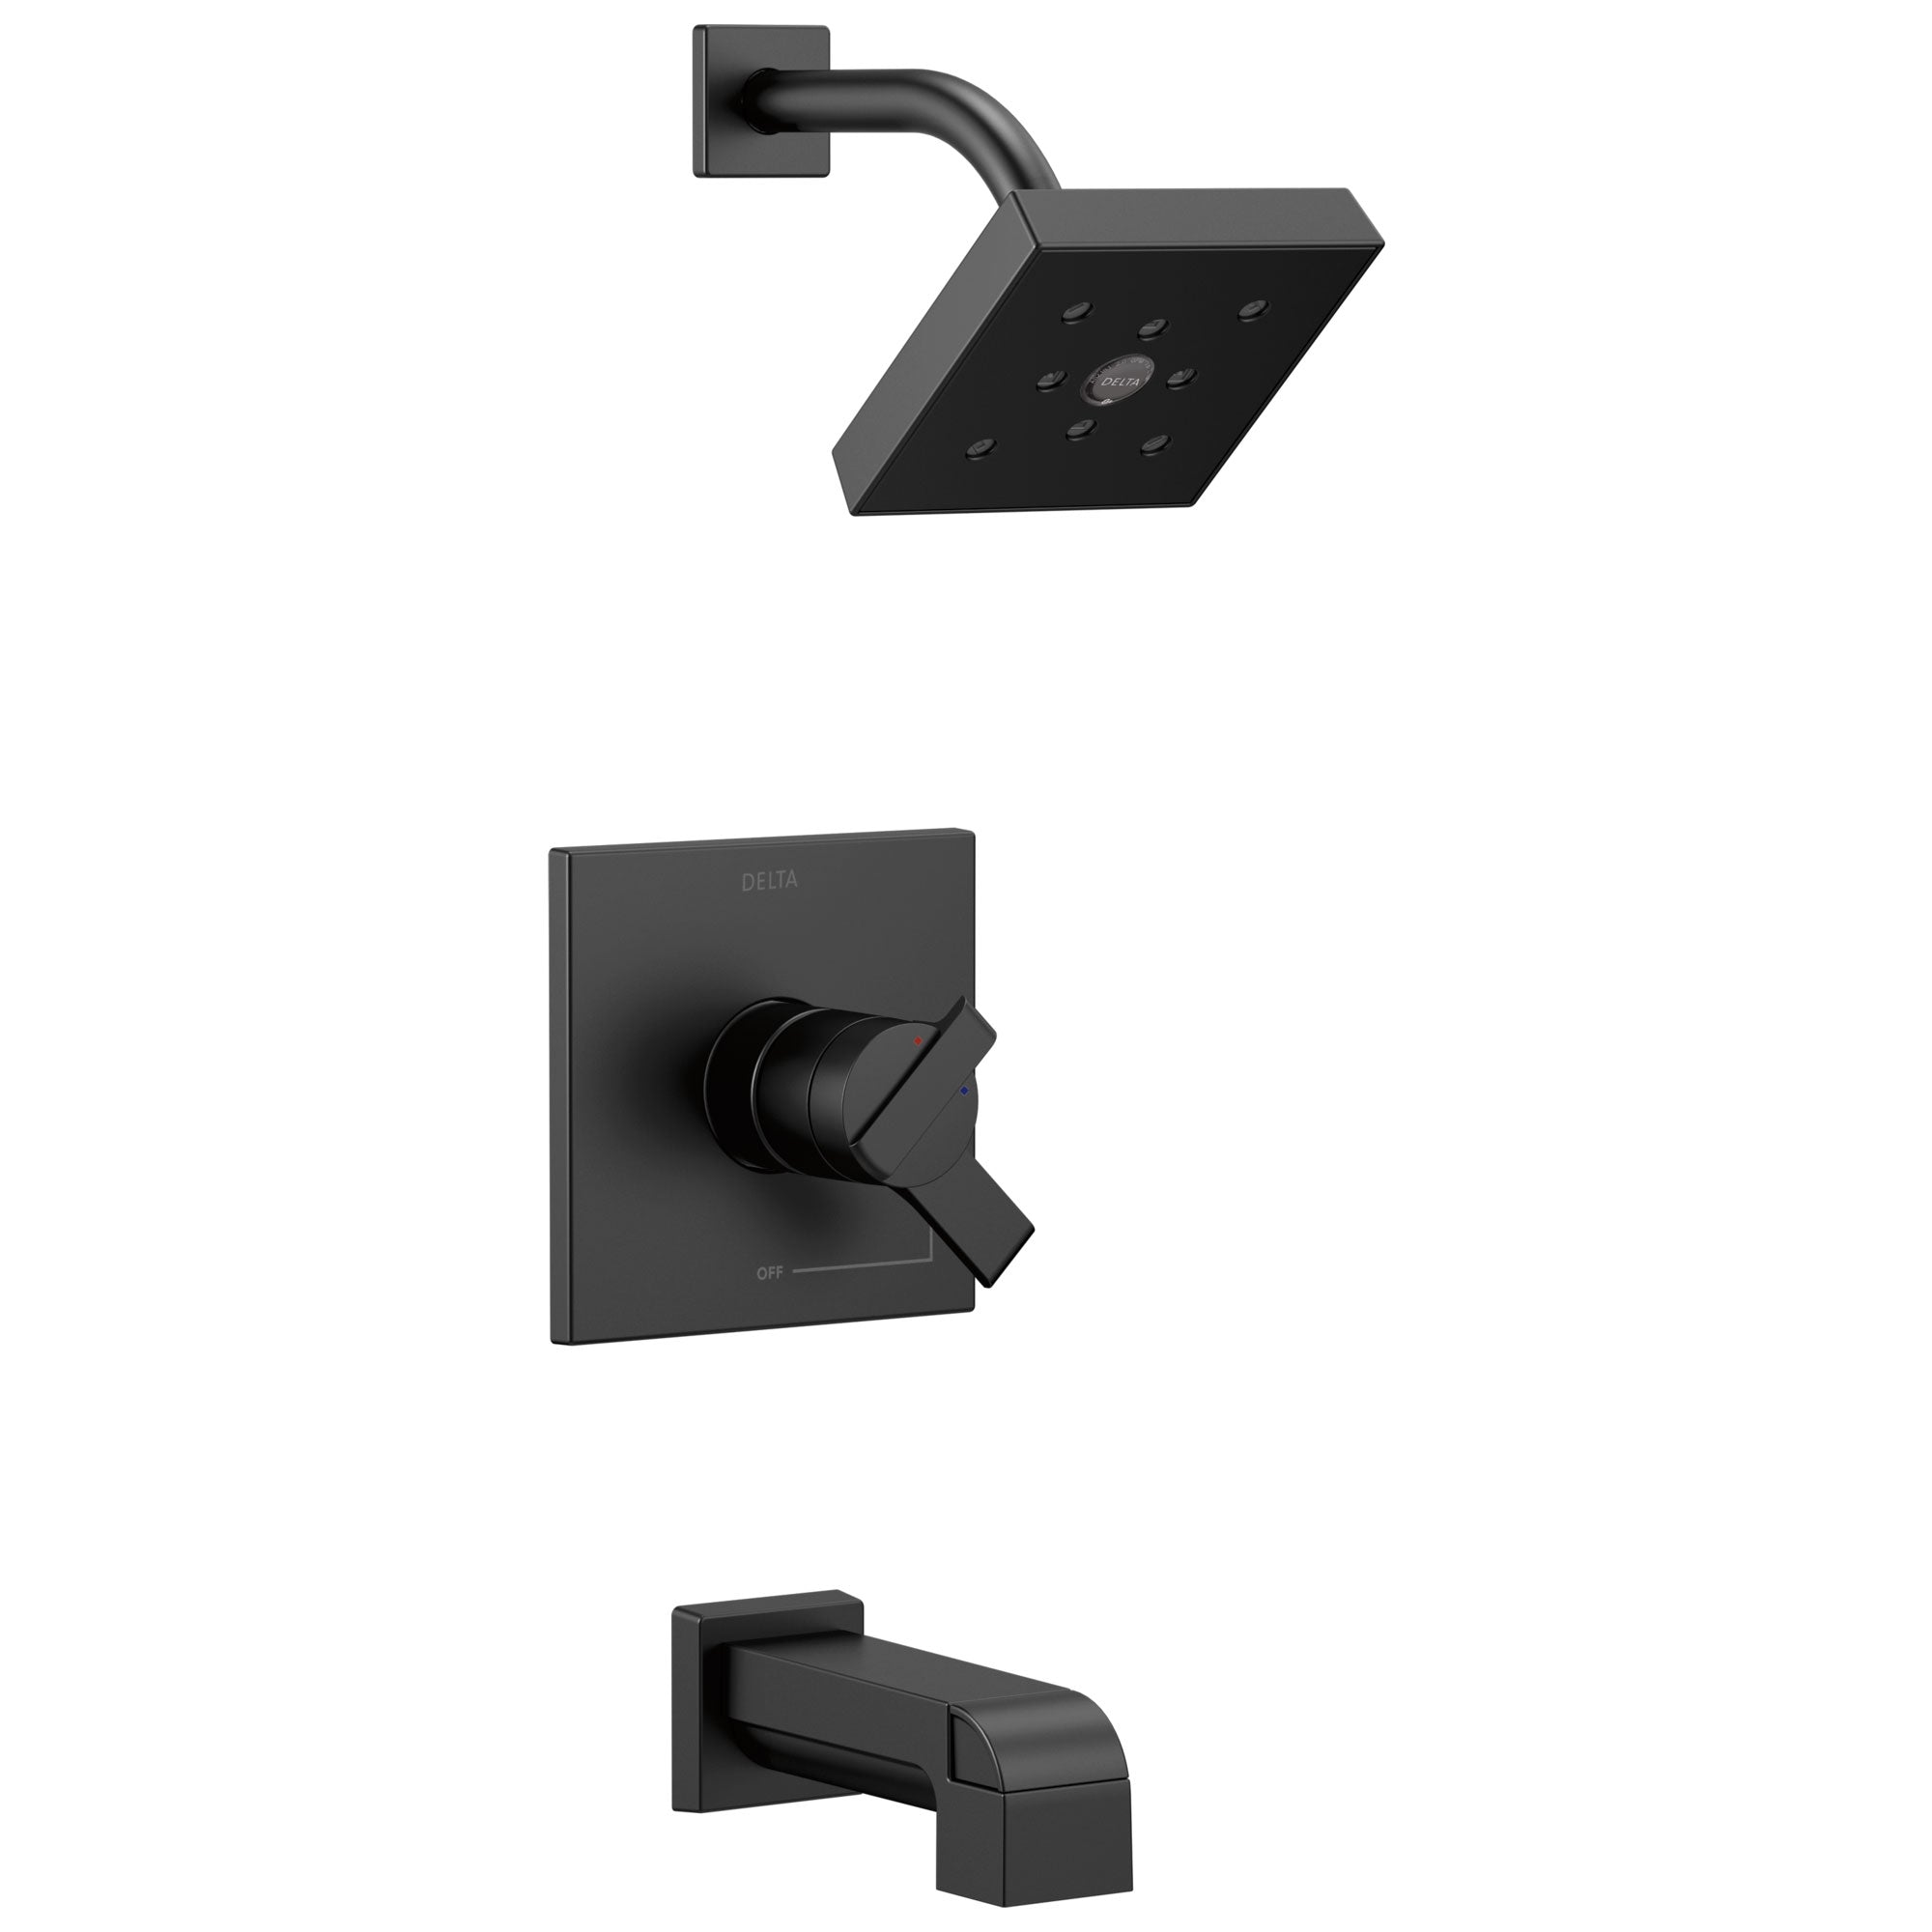 Delta Ara Collection Matte Black Finish Modern Temperature and Water Pressure Dual Control Tub & Shower Faucet Combo Includes Rough Valve with Stops D2296V